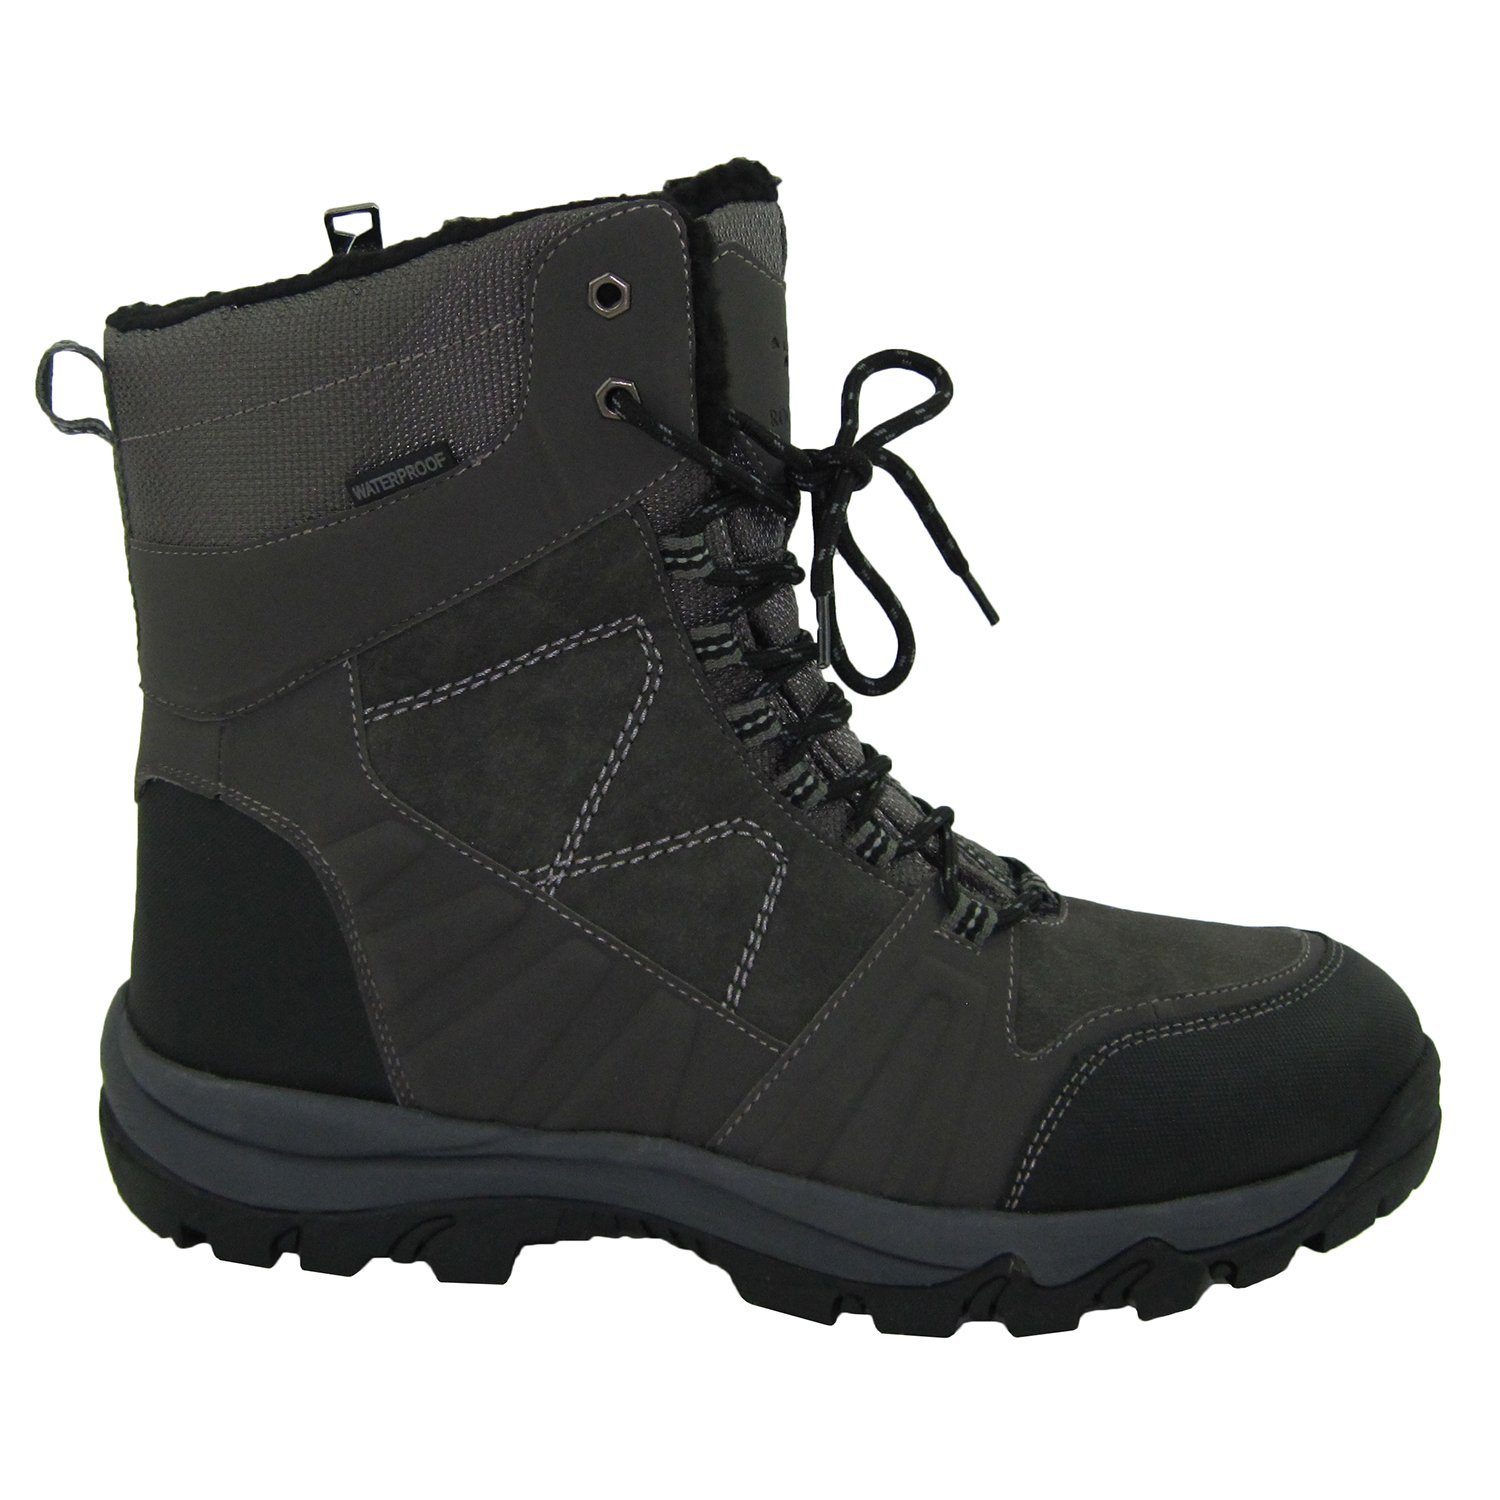 695caa96754 Rocky Moose Men's Winter Boots 3M Thinsulate Waterproof with Membrane Side  Zipper Temperature Rating -32°C Ohio